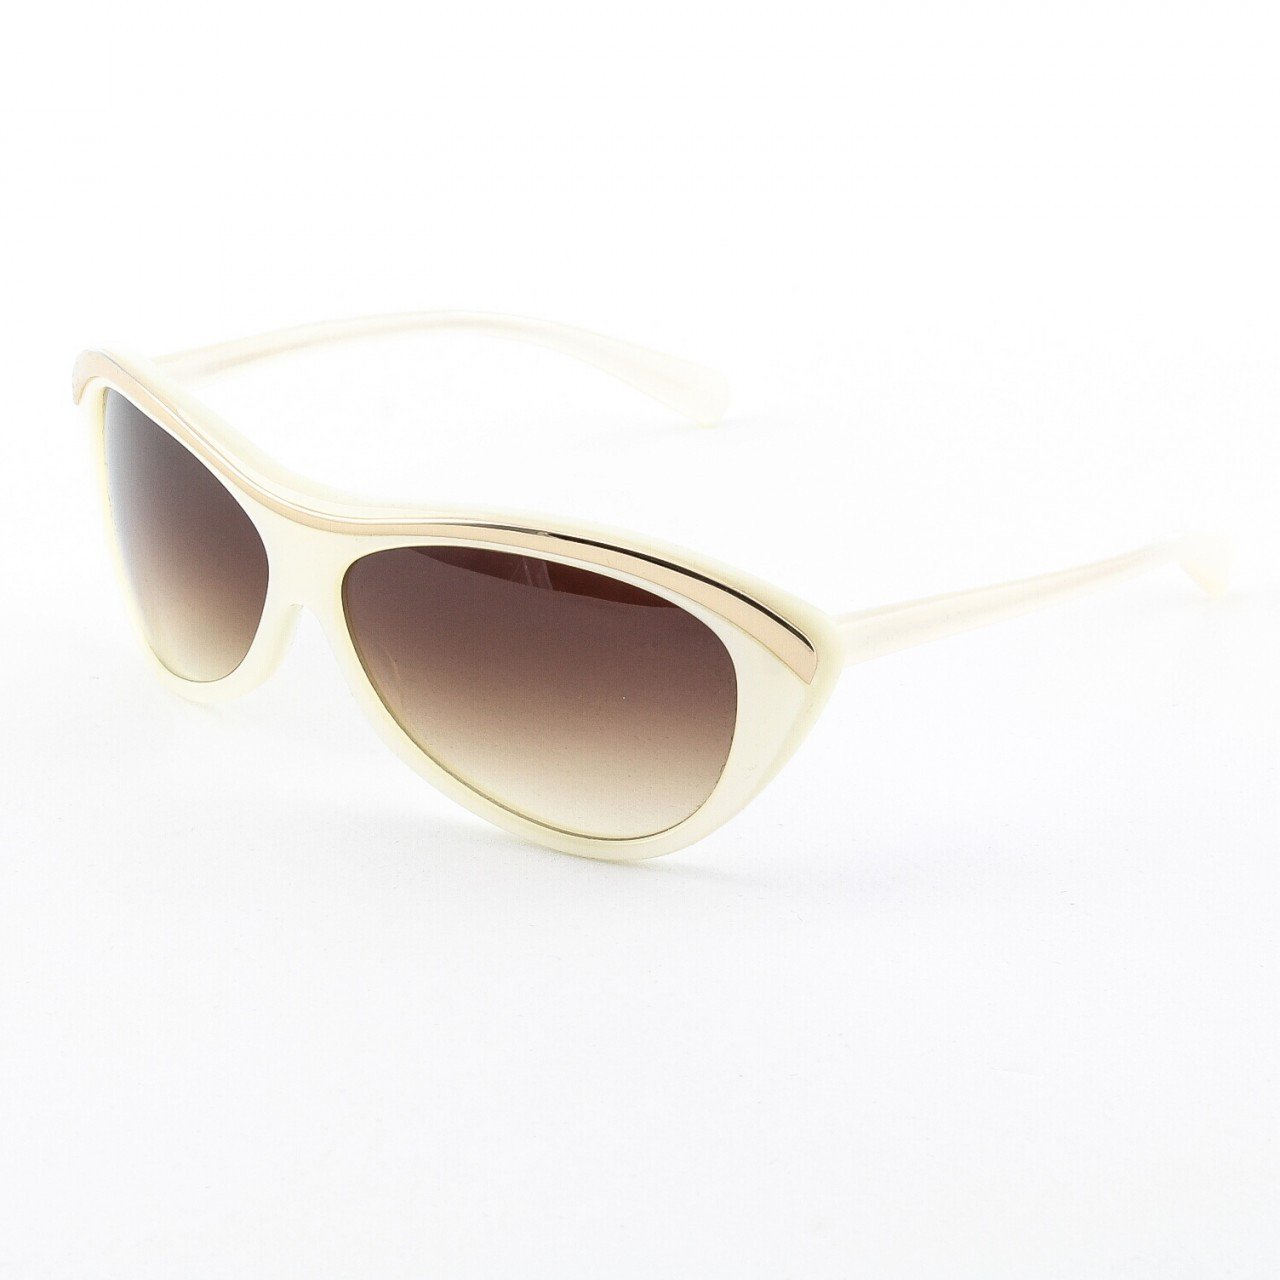 Paul Smith PS-378 ISSB Sunglasses Color Ivory Gold with Brown Gradient Lenses 61mm